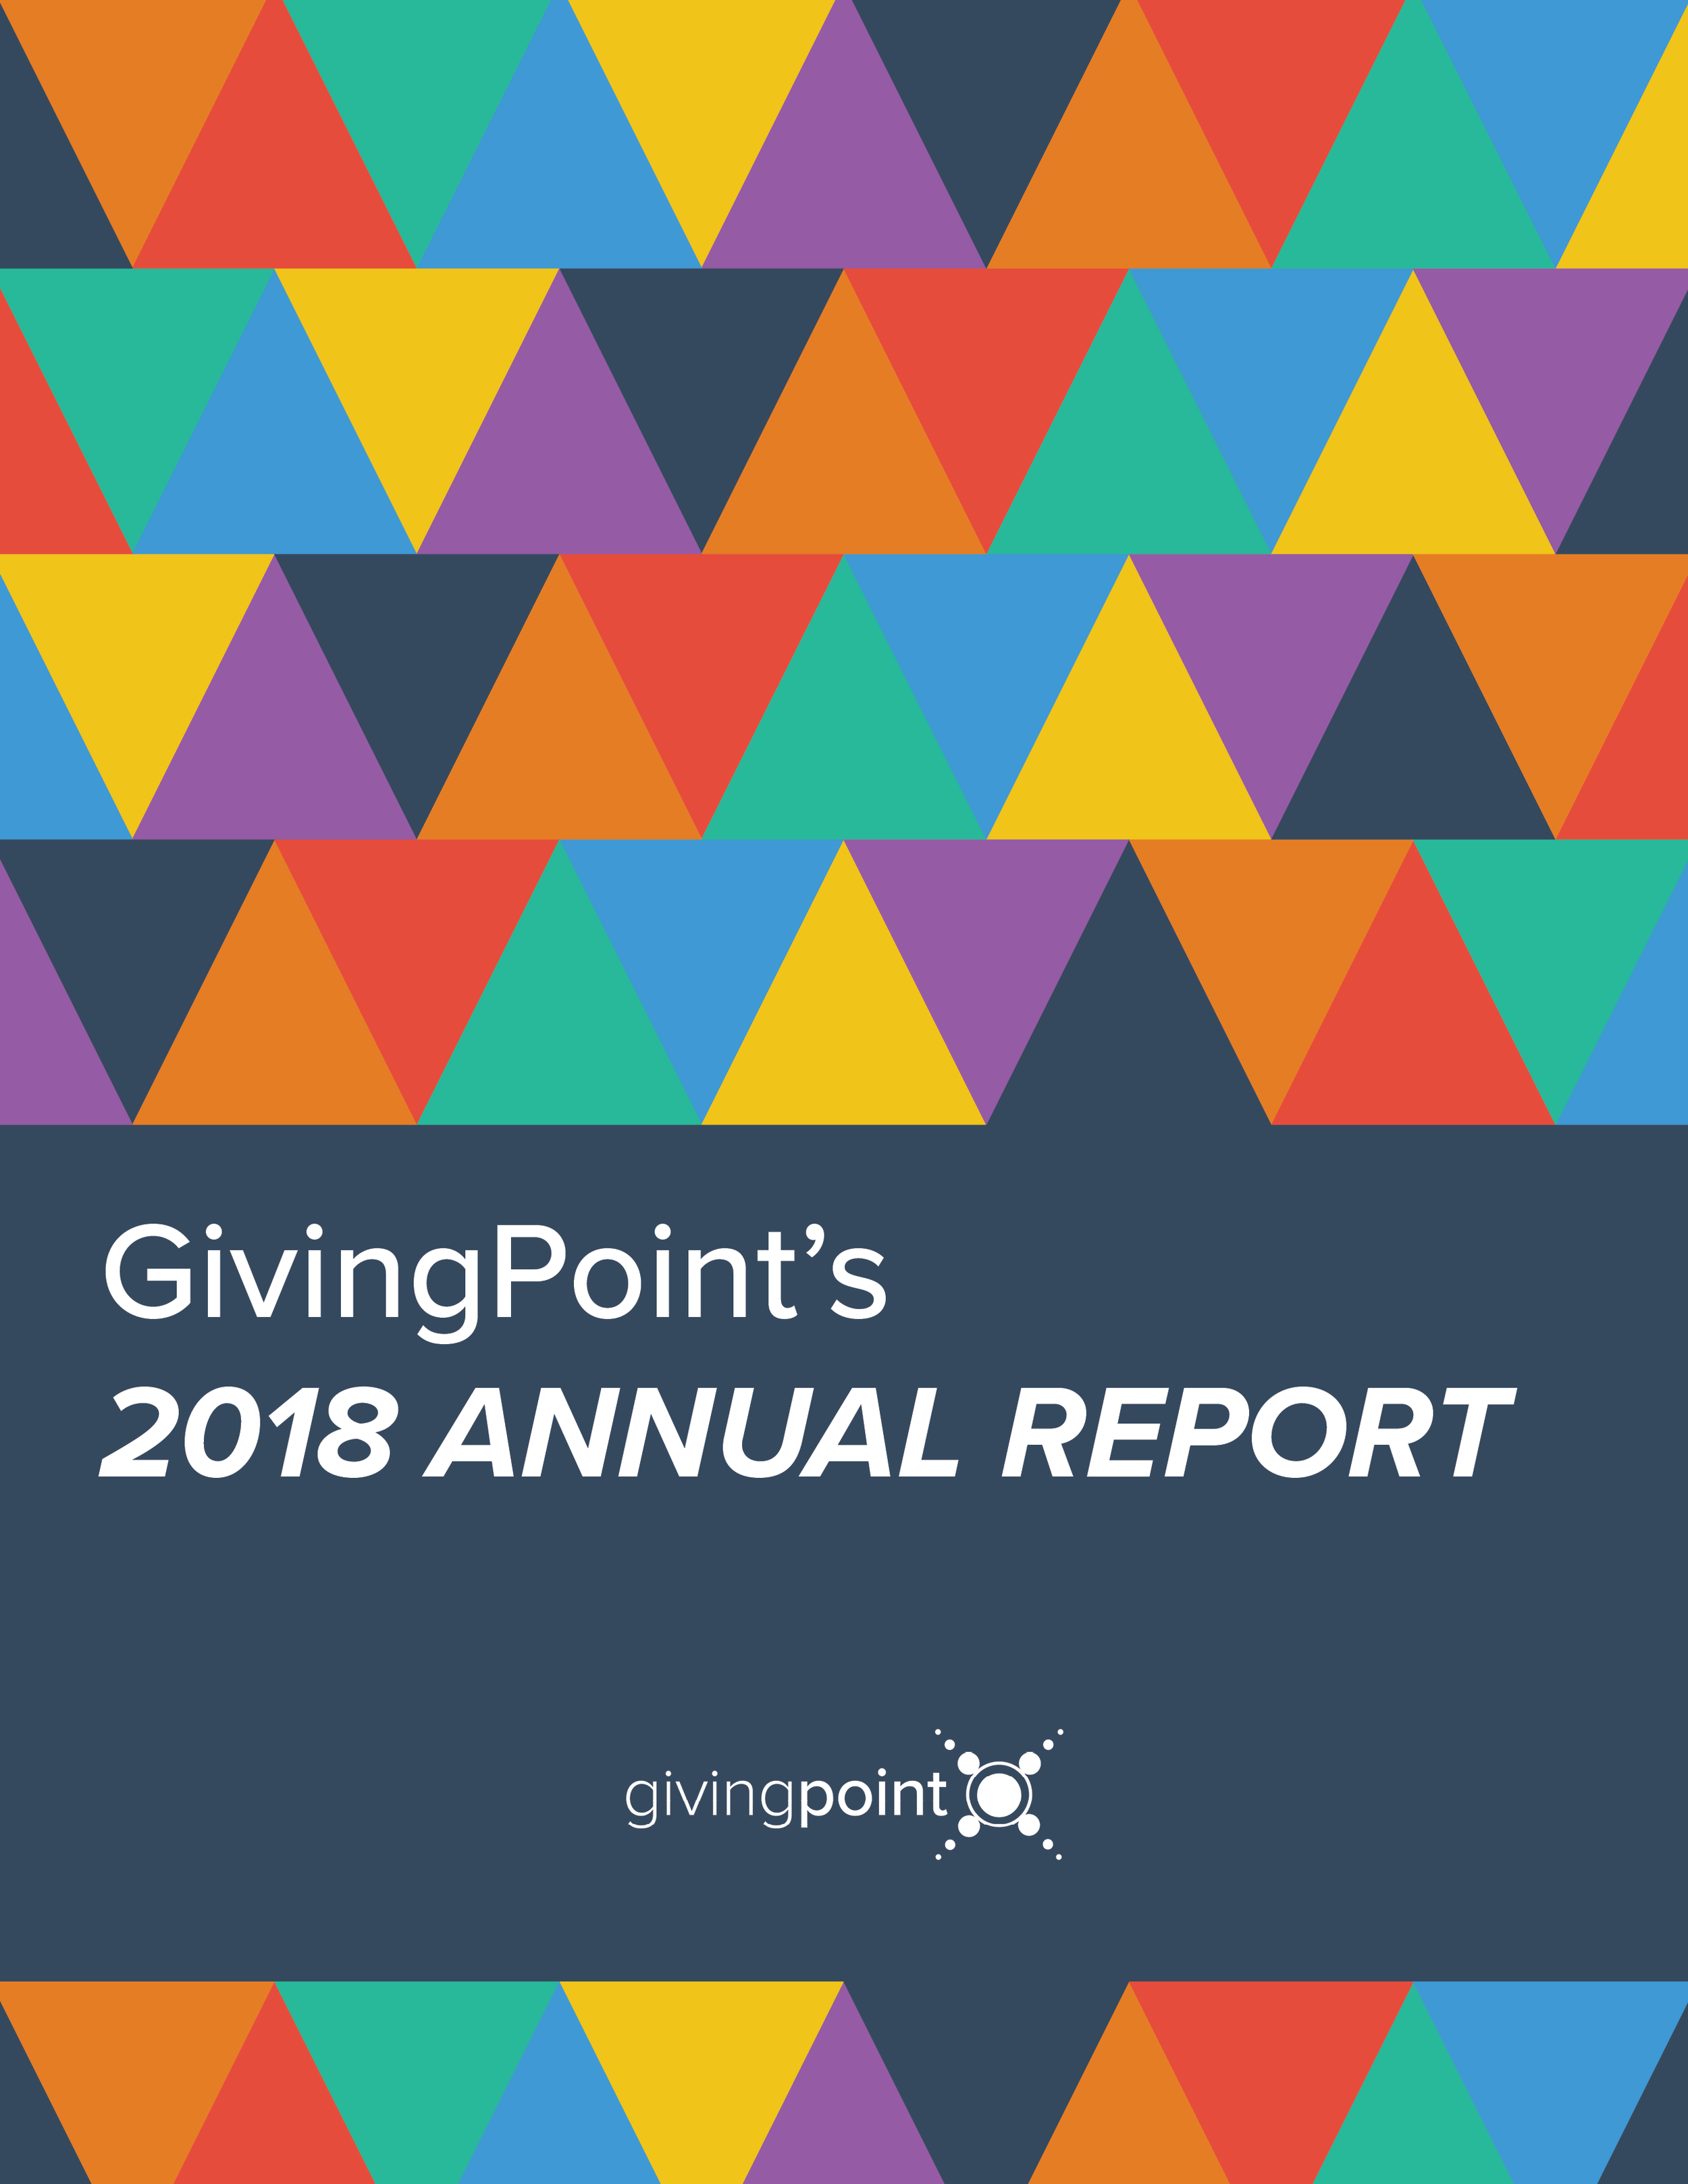 Annual Report_4_22.png